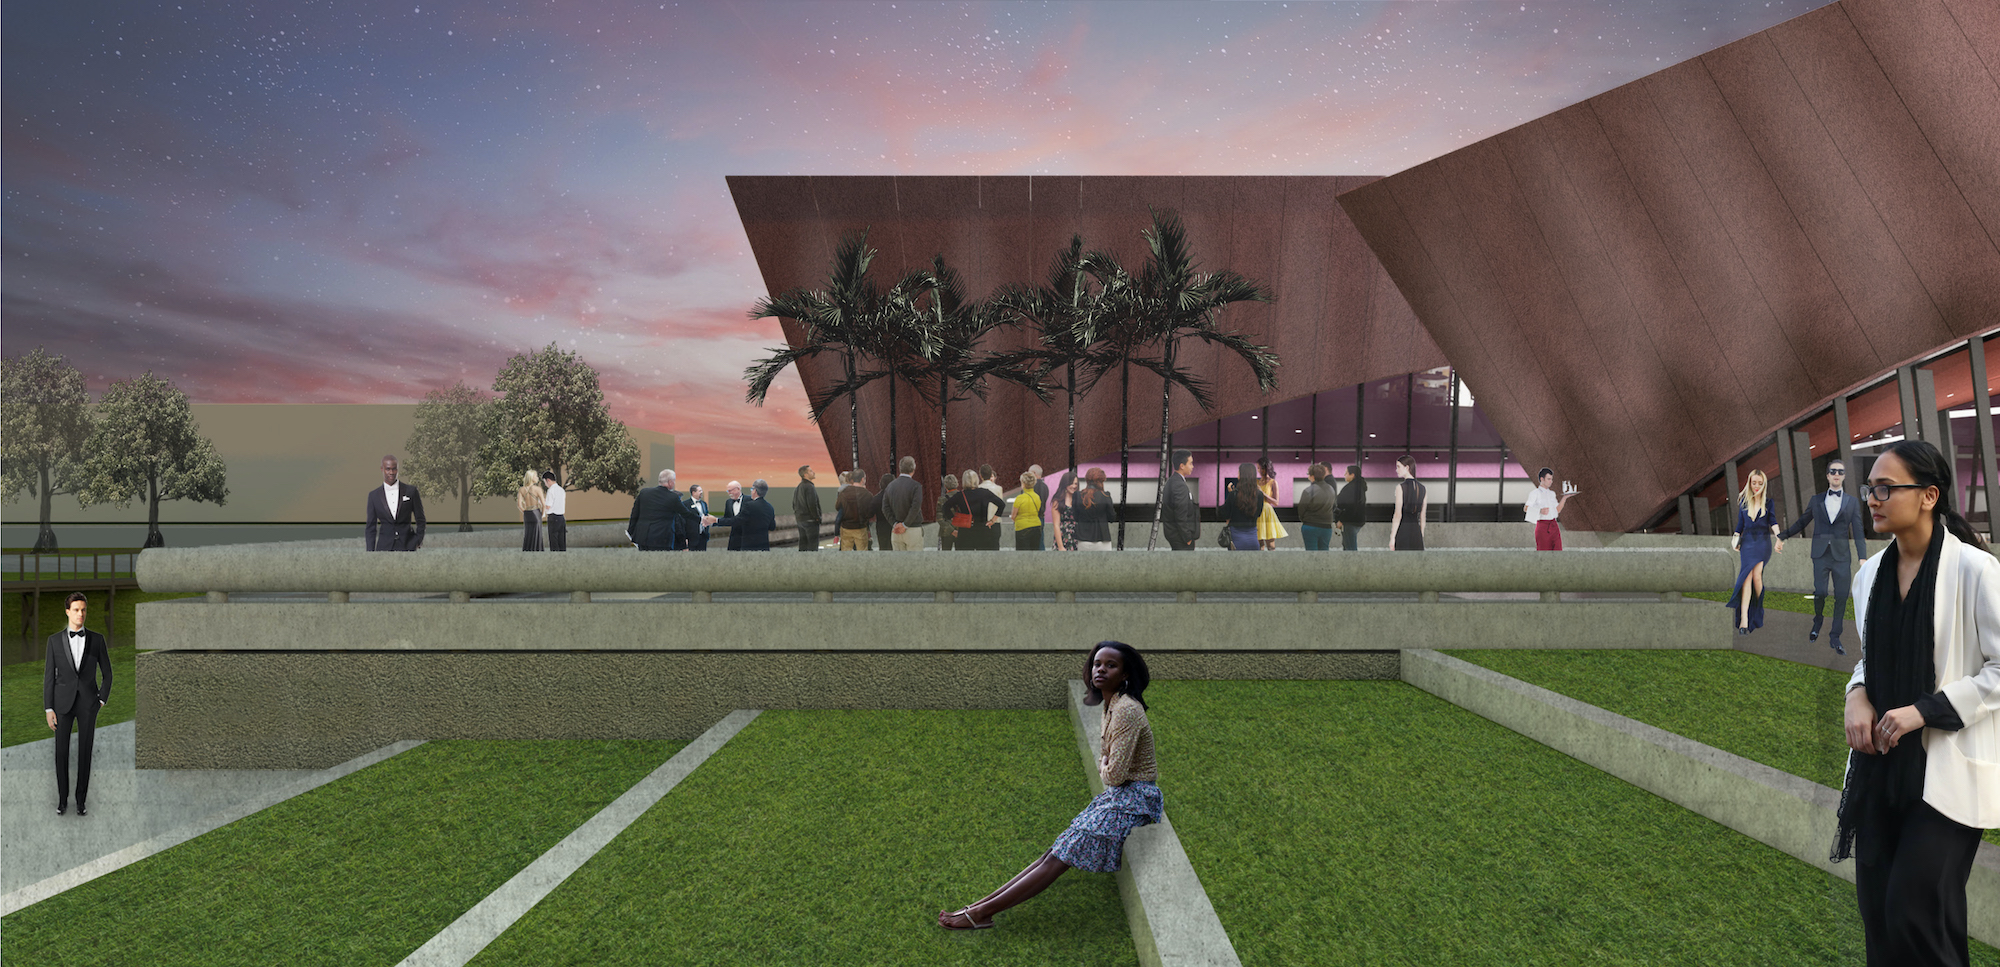 Rendering shows a mock-up of the new WInter Park Events Center with dark down and red brick and a green space with people.